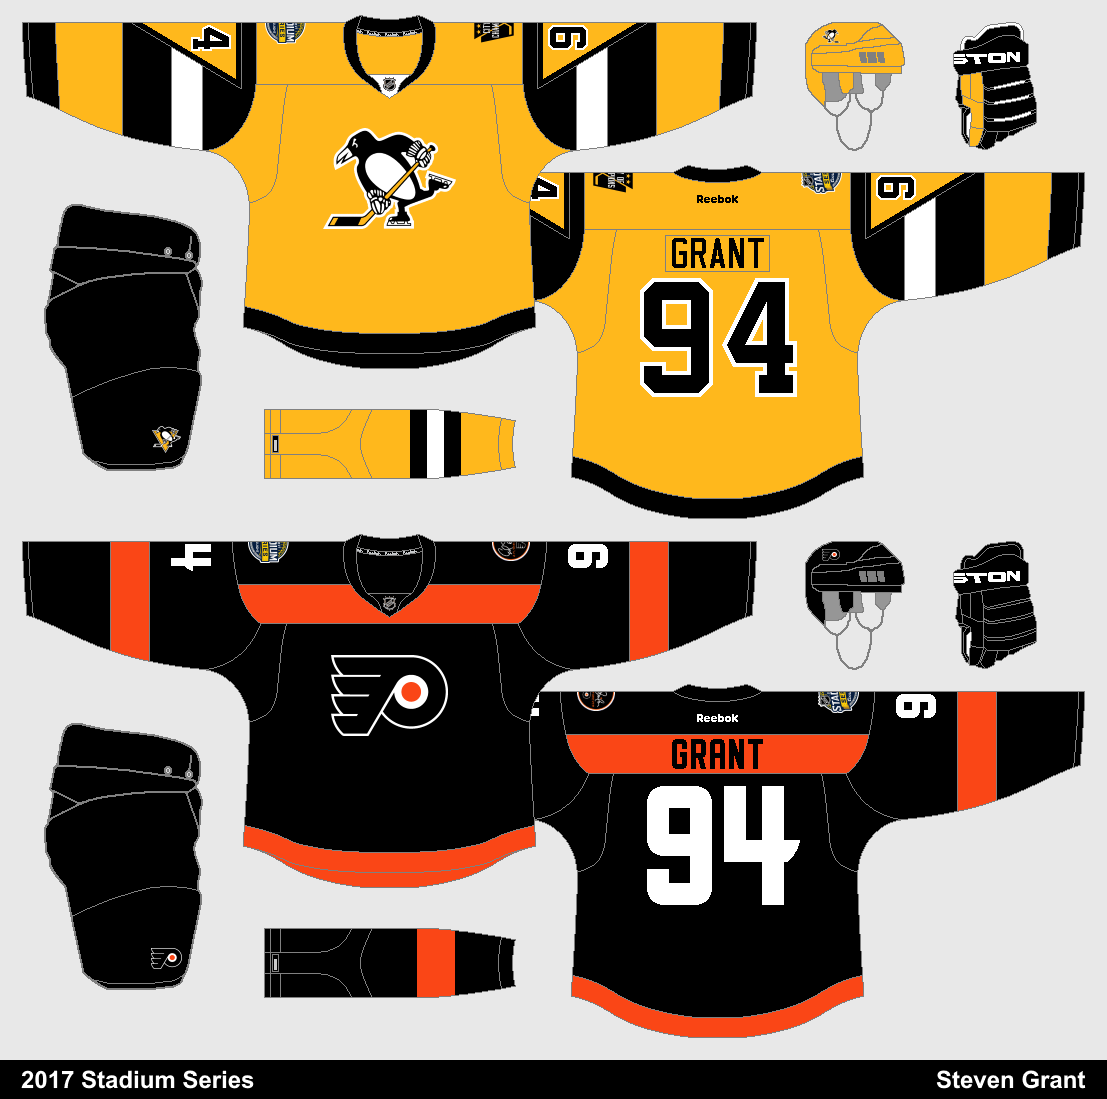 +I instantly like these designs better than the actual Stadium Series  jerseys 7f51bd9f43d